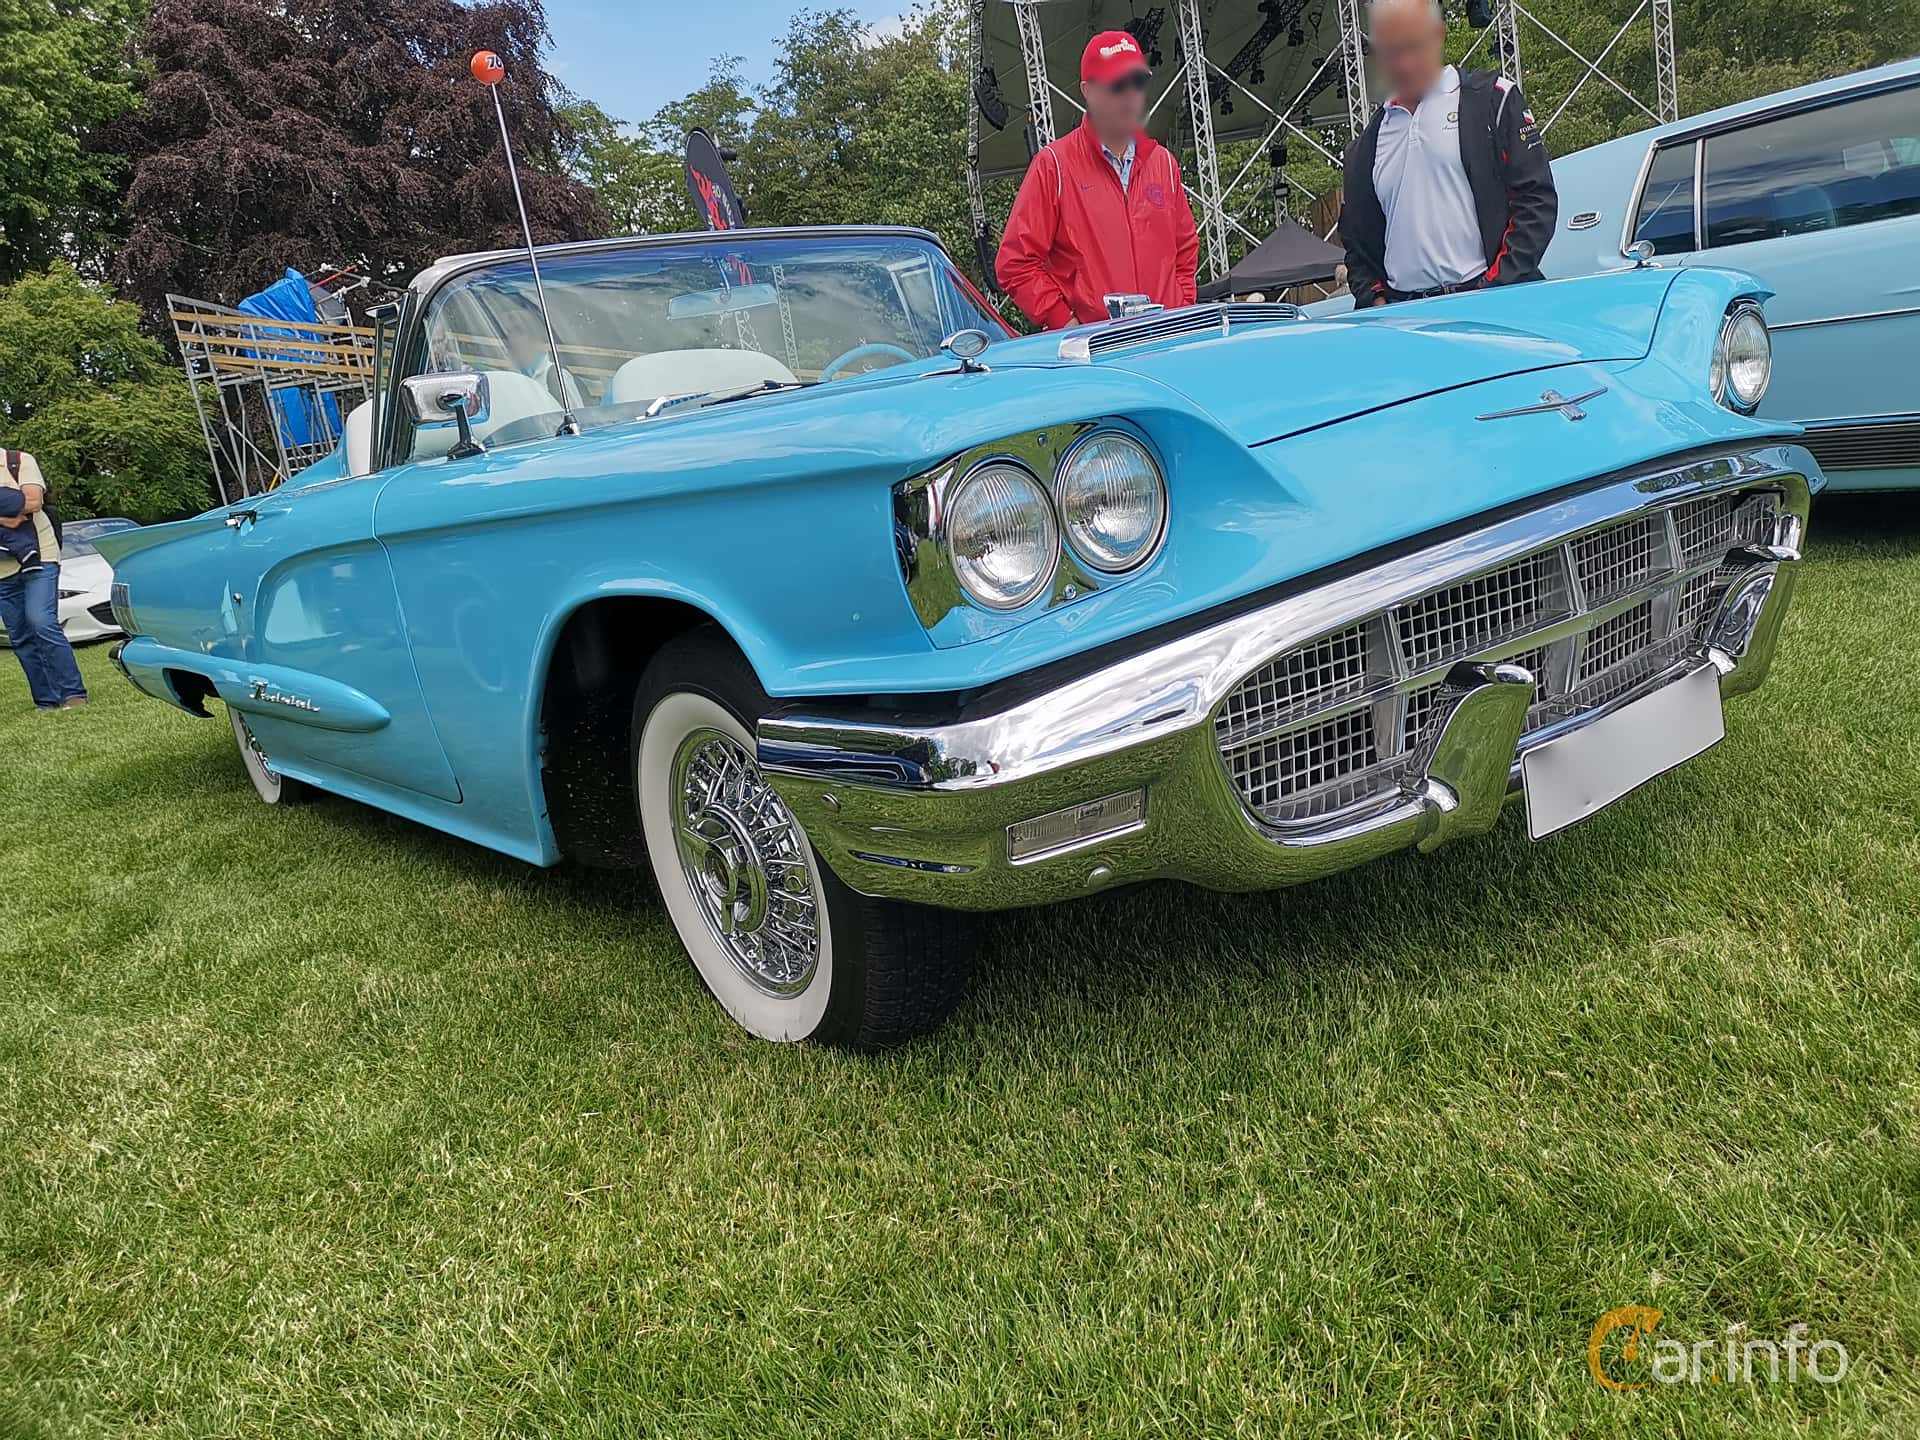 Ford Thunderbird Convertible 5.8 V8 Automatic, 305hp, 1960 at Sofiero Classic 2019